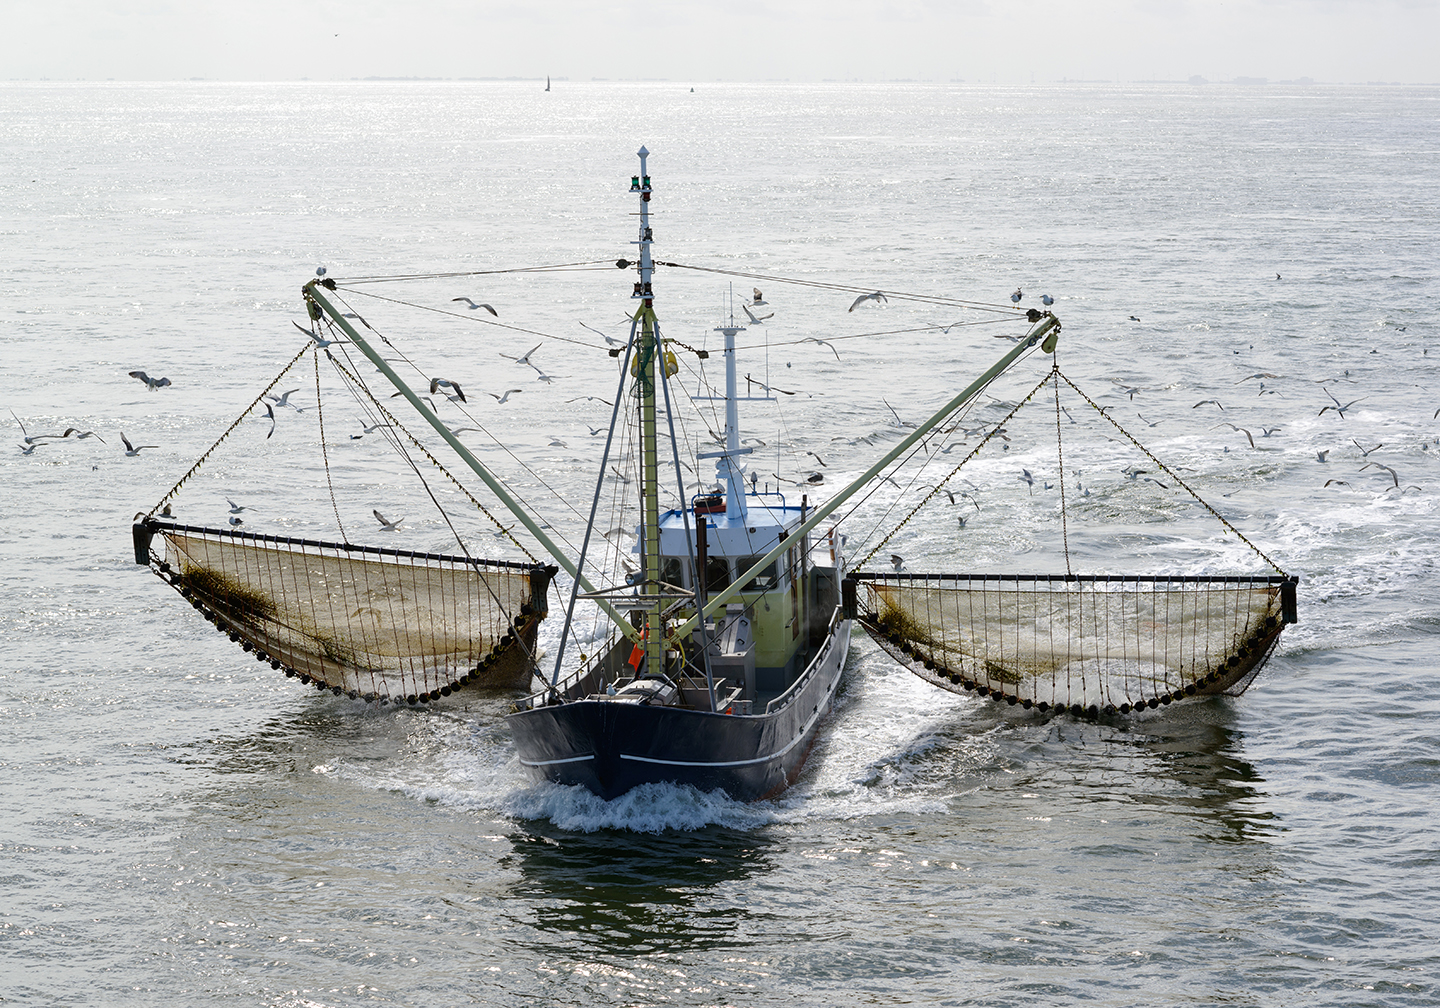 A commercial fishing boat with its nets extended.